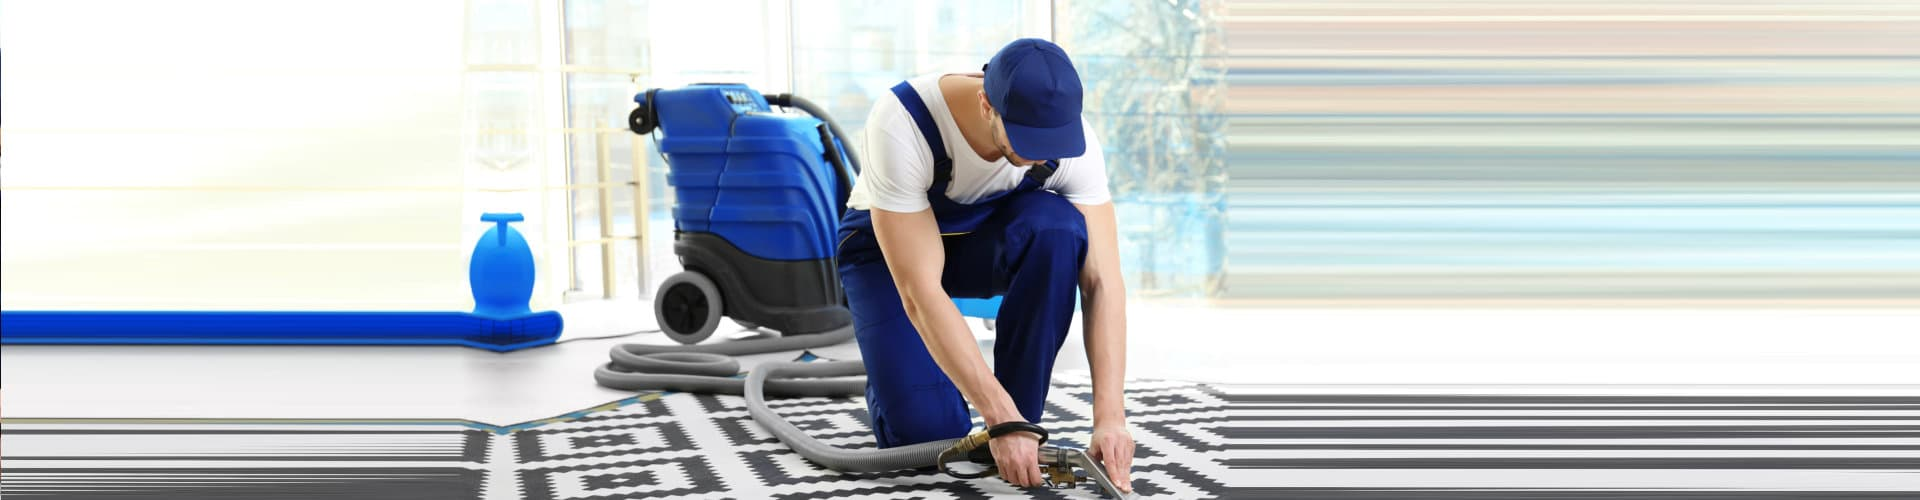 man cleaning the floor mat